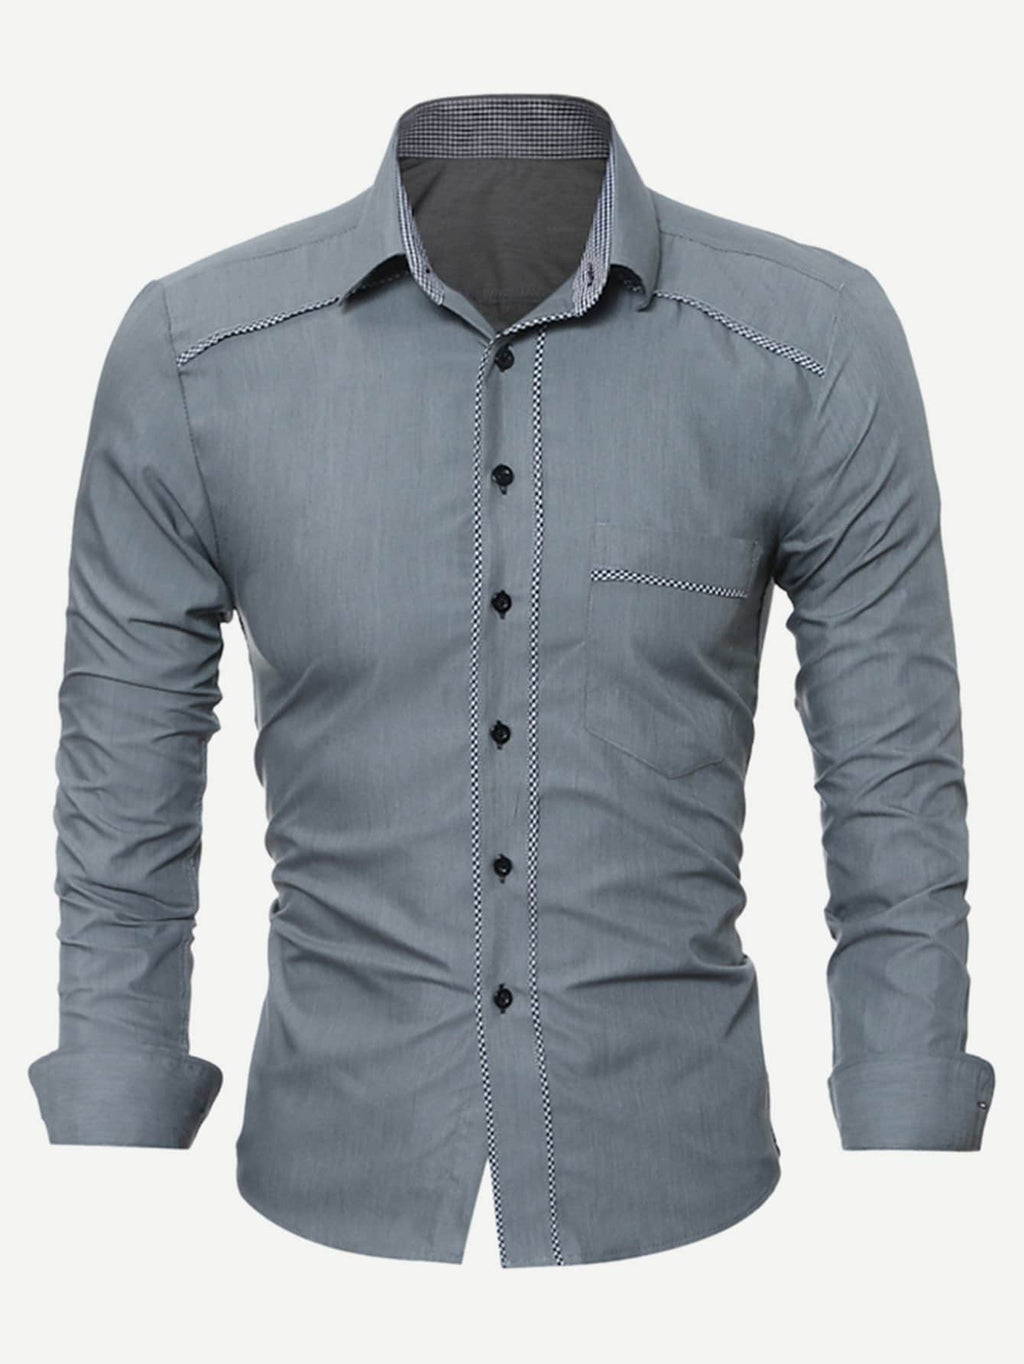 Men's Formal Shirts - Contrast Trim Shirt